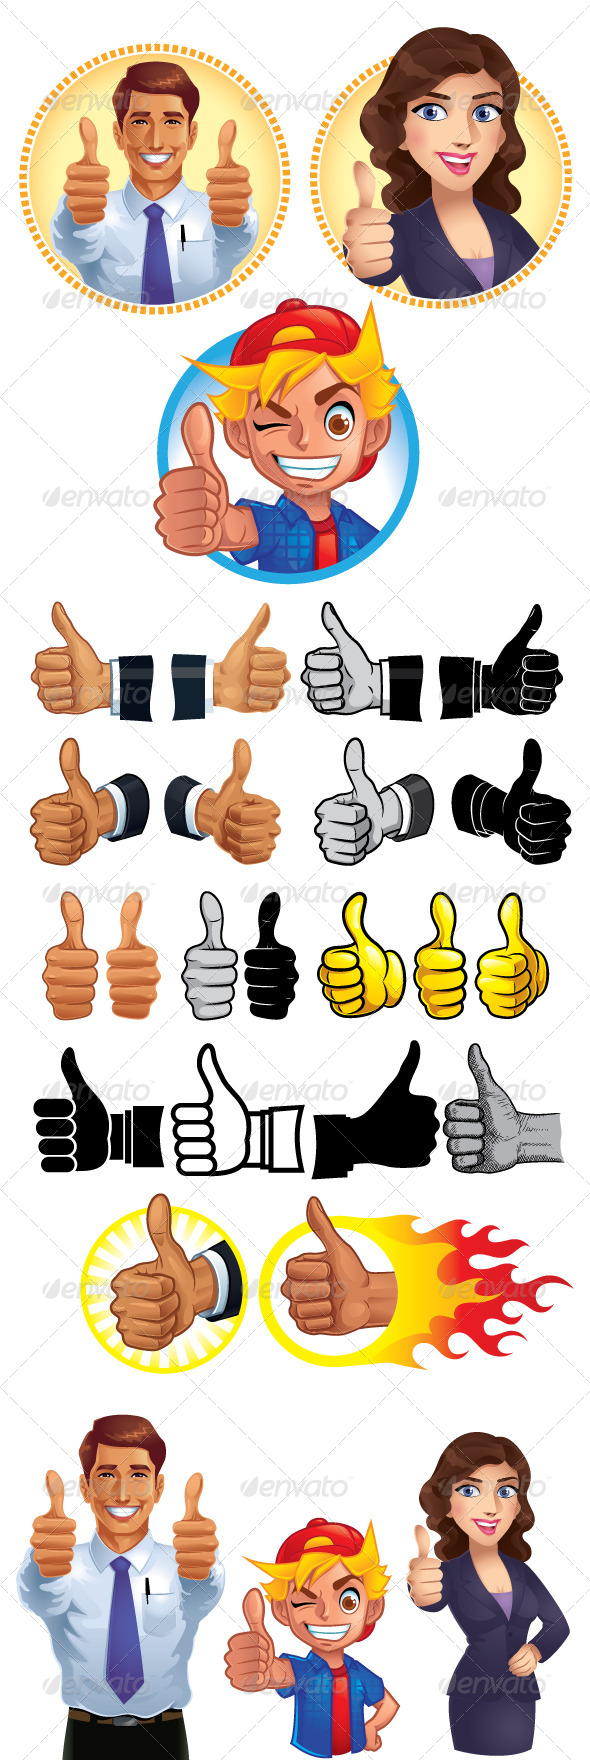 Thumb Up Set - People Characters